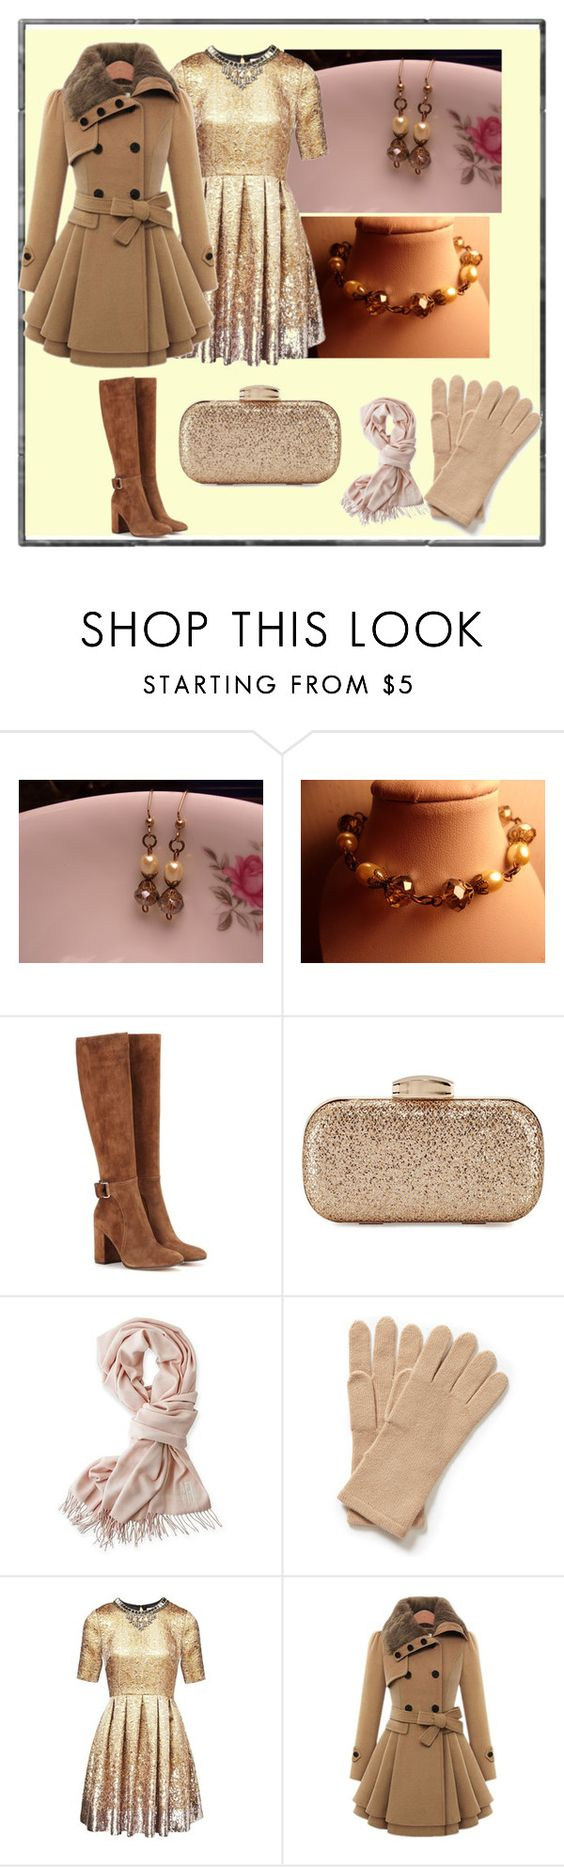 """Untitled #562"" by bamagirl0320 ❤ liked on Polyvore featuring Gianvito Rossi, Mark & Graham and Matthew Williamson"